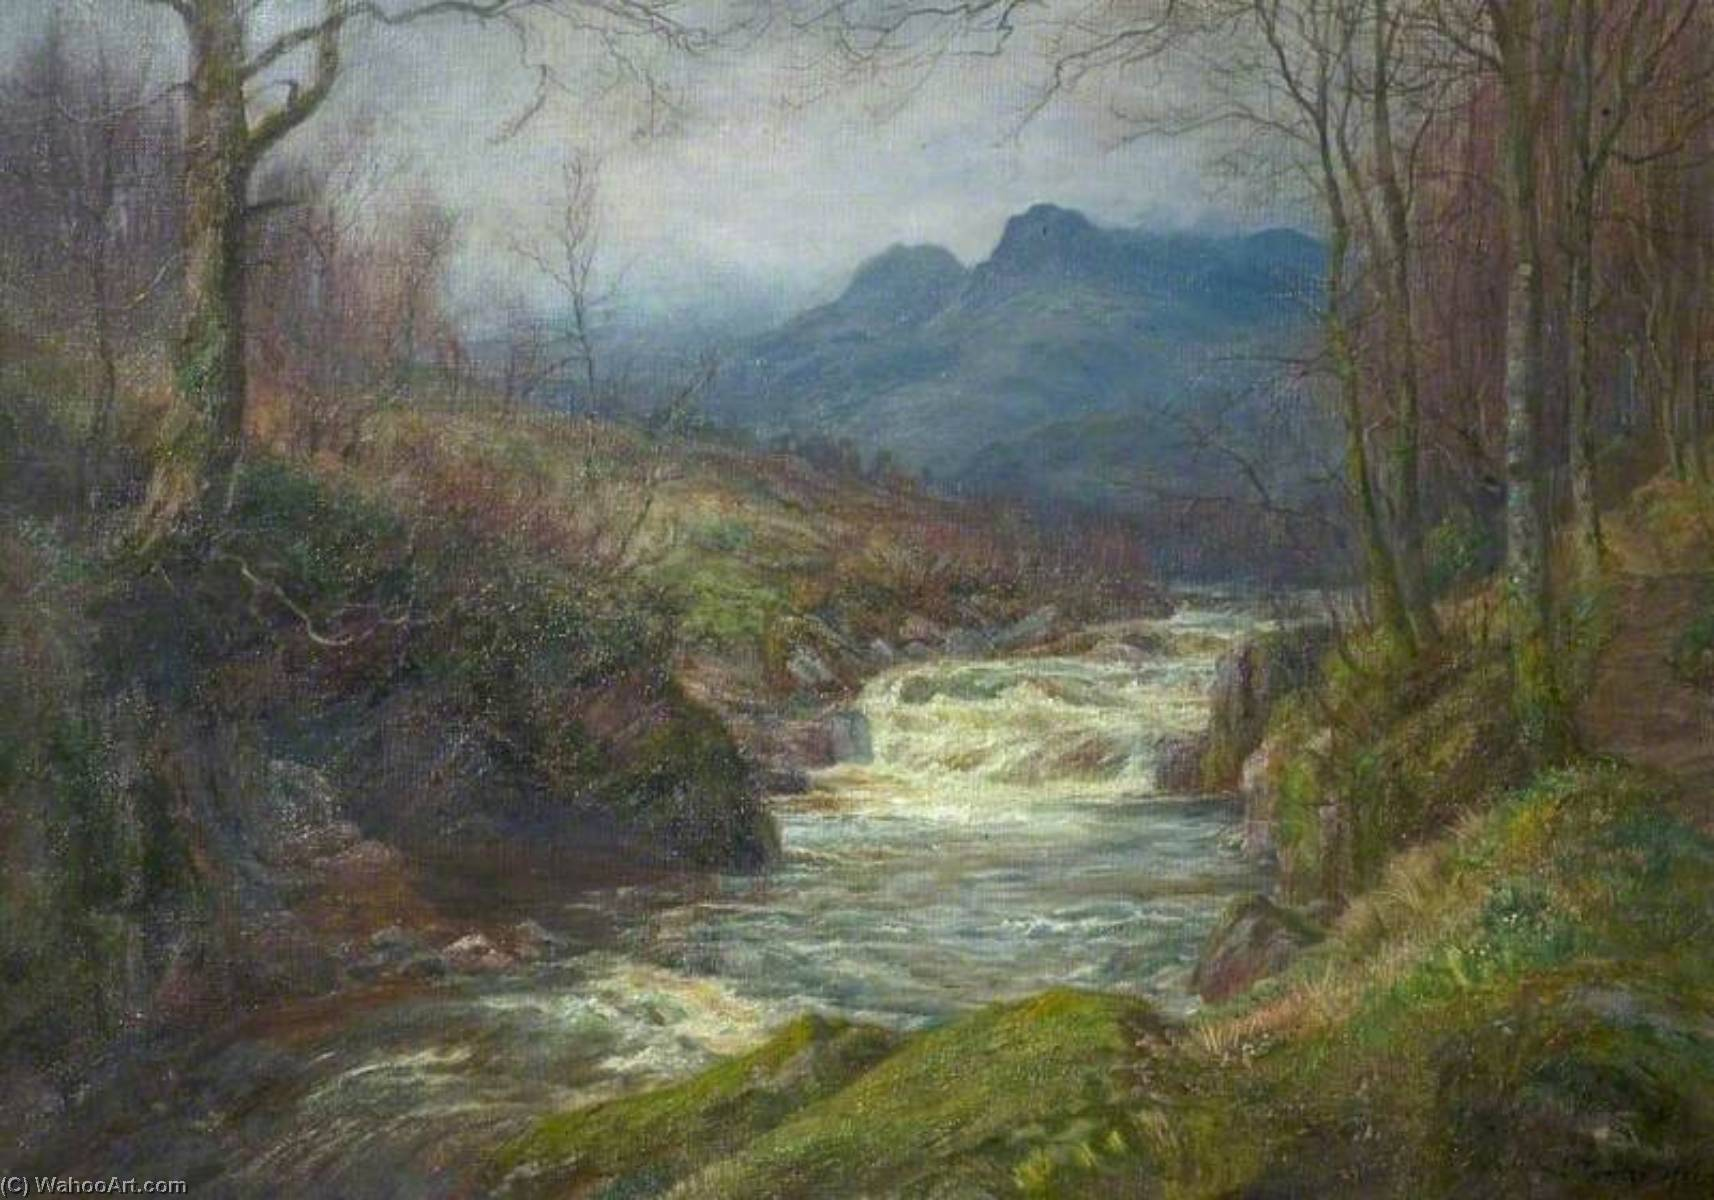 Flowing from the Fells, 1931 by William Lakin Turner (1936-1936, United Kingdom) | Reproductions William Lakin Turner | WahooArt.com